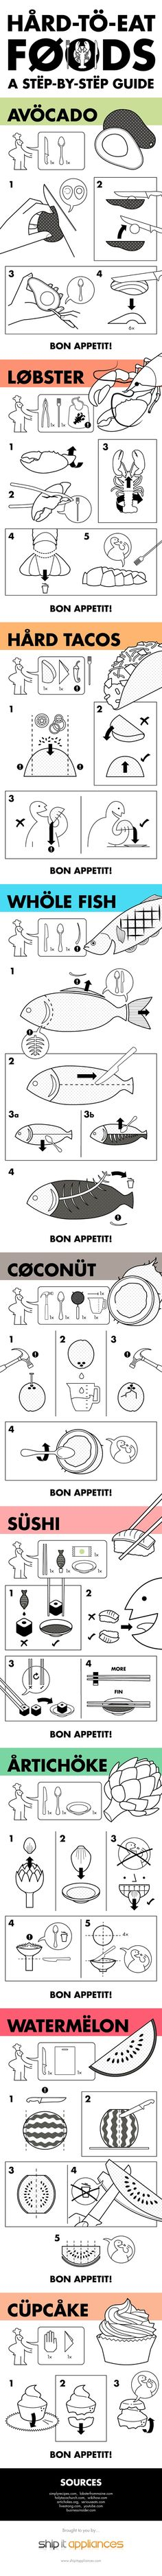 IKEA-Inspired Instruction Manuals Will Teach You How To Eat Difficult Foods. Use this kind of style of illustration for the concept board. | DesignTAXI.com